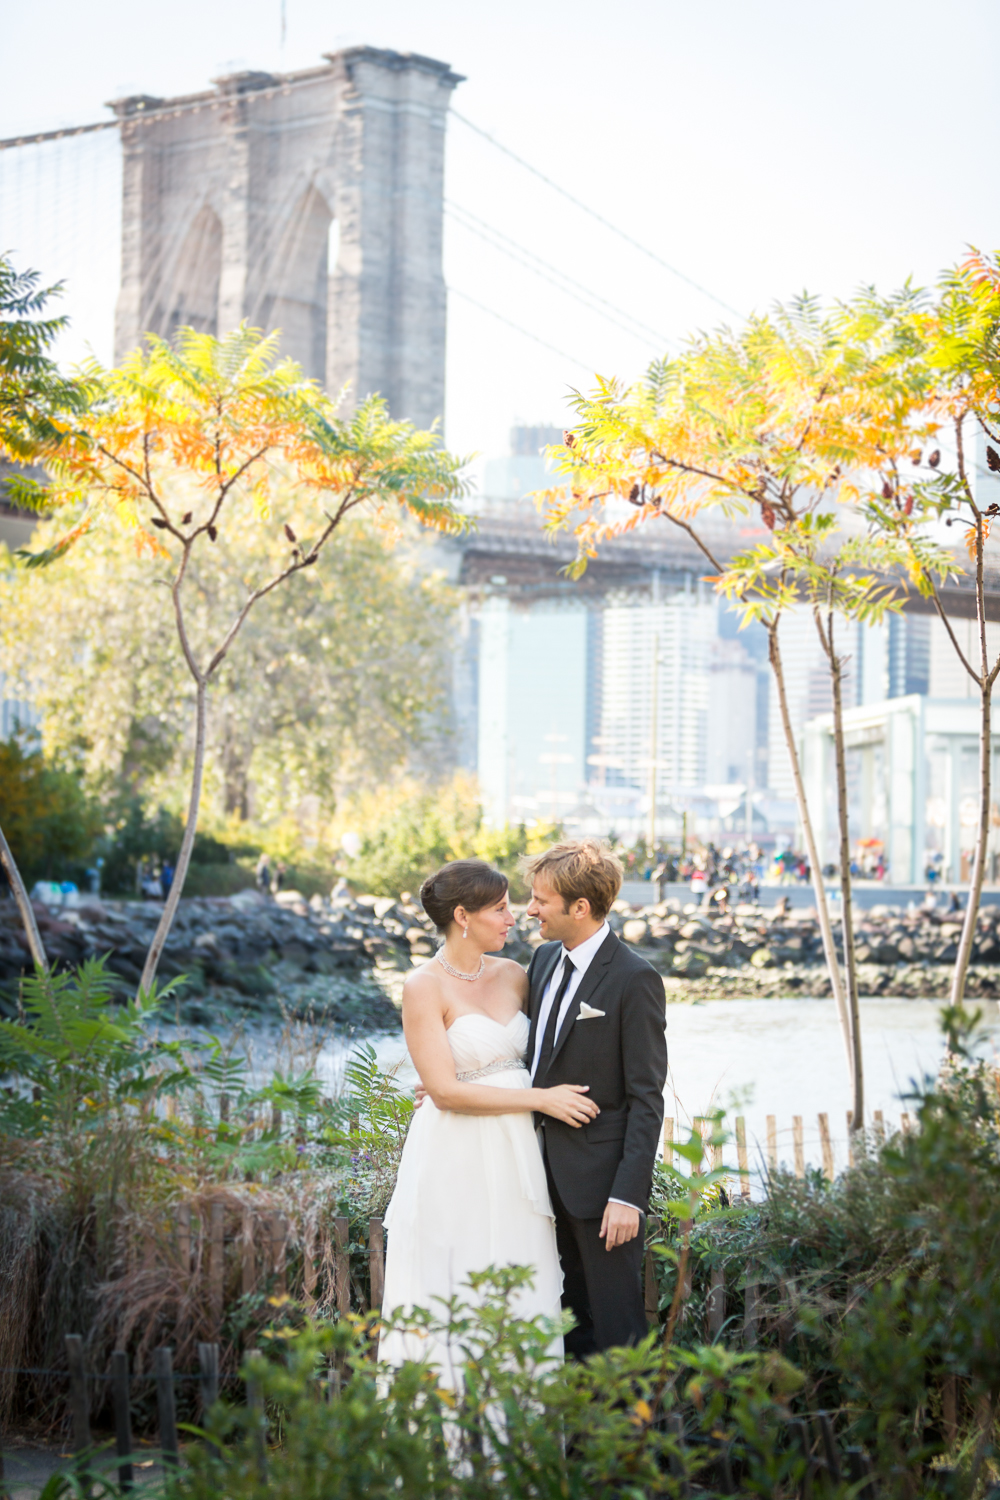 Wedding Photography in Brooklyn by Julie Saad. Traditional wedding portrait in DUMBO, near the Brooklyn Bridge.